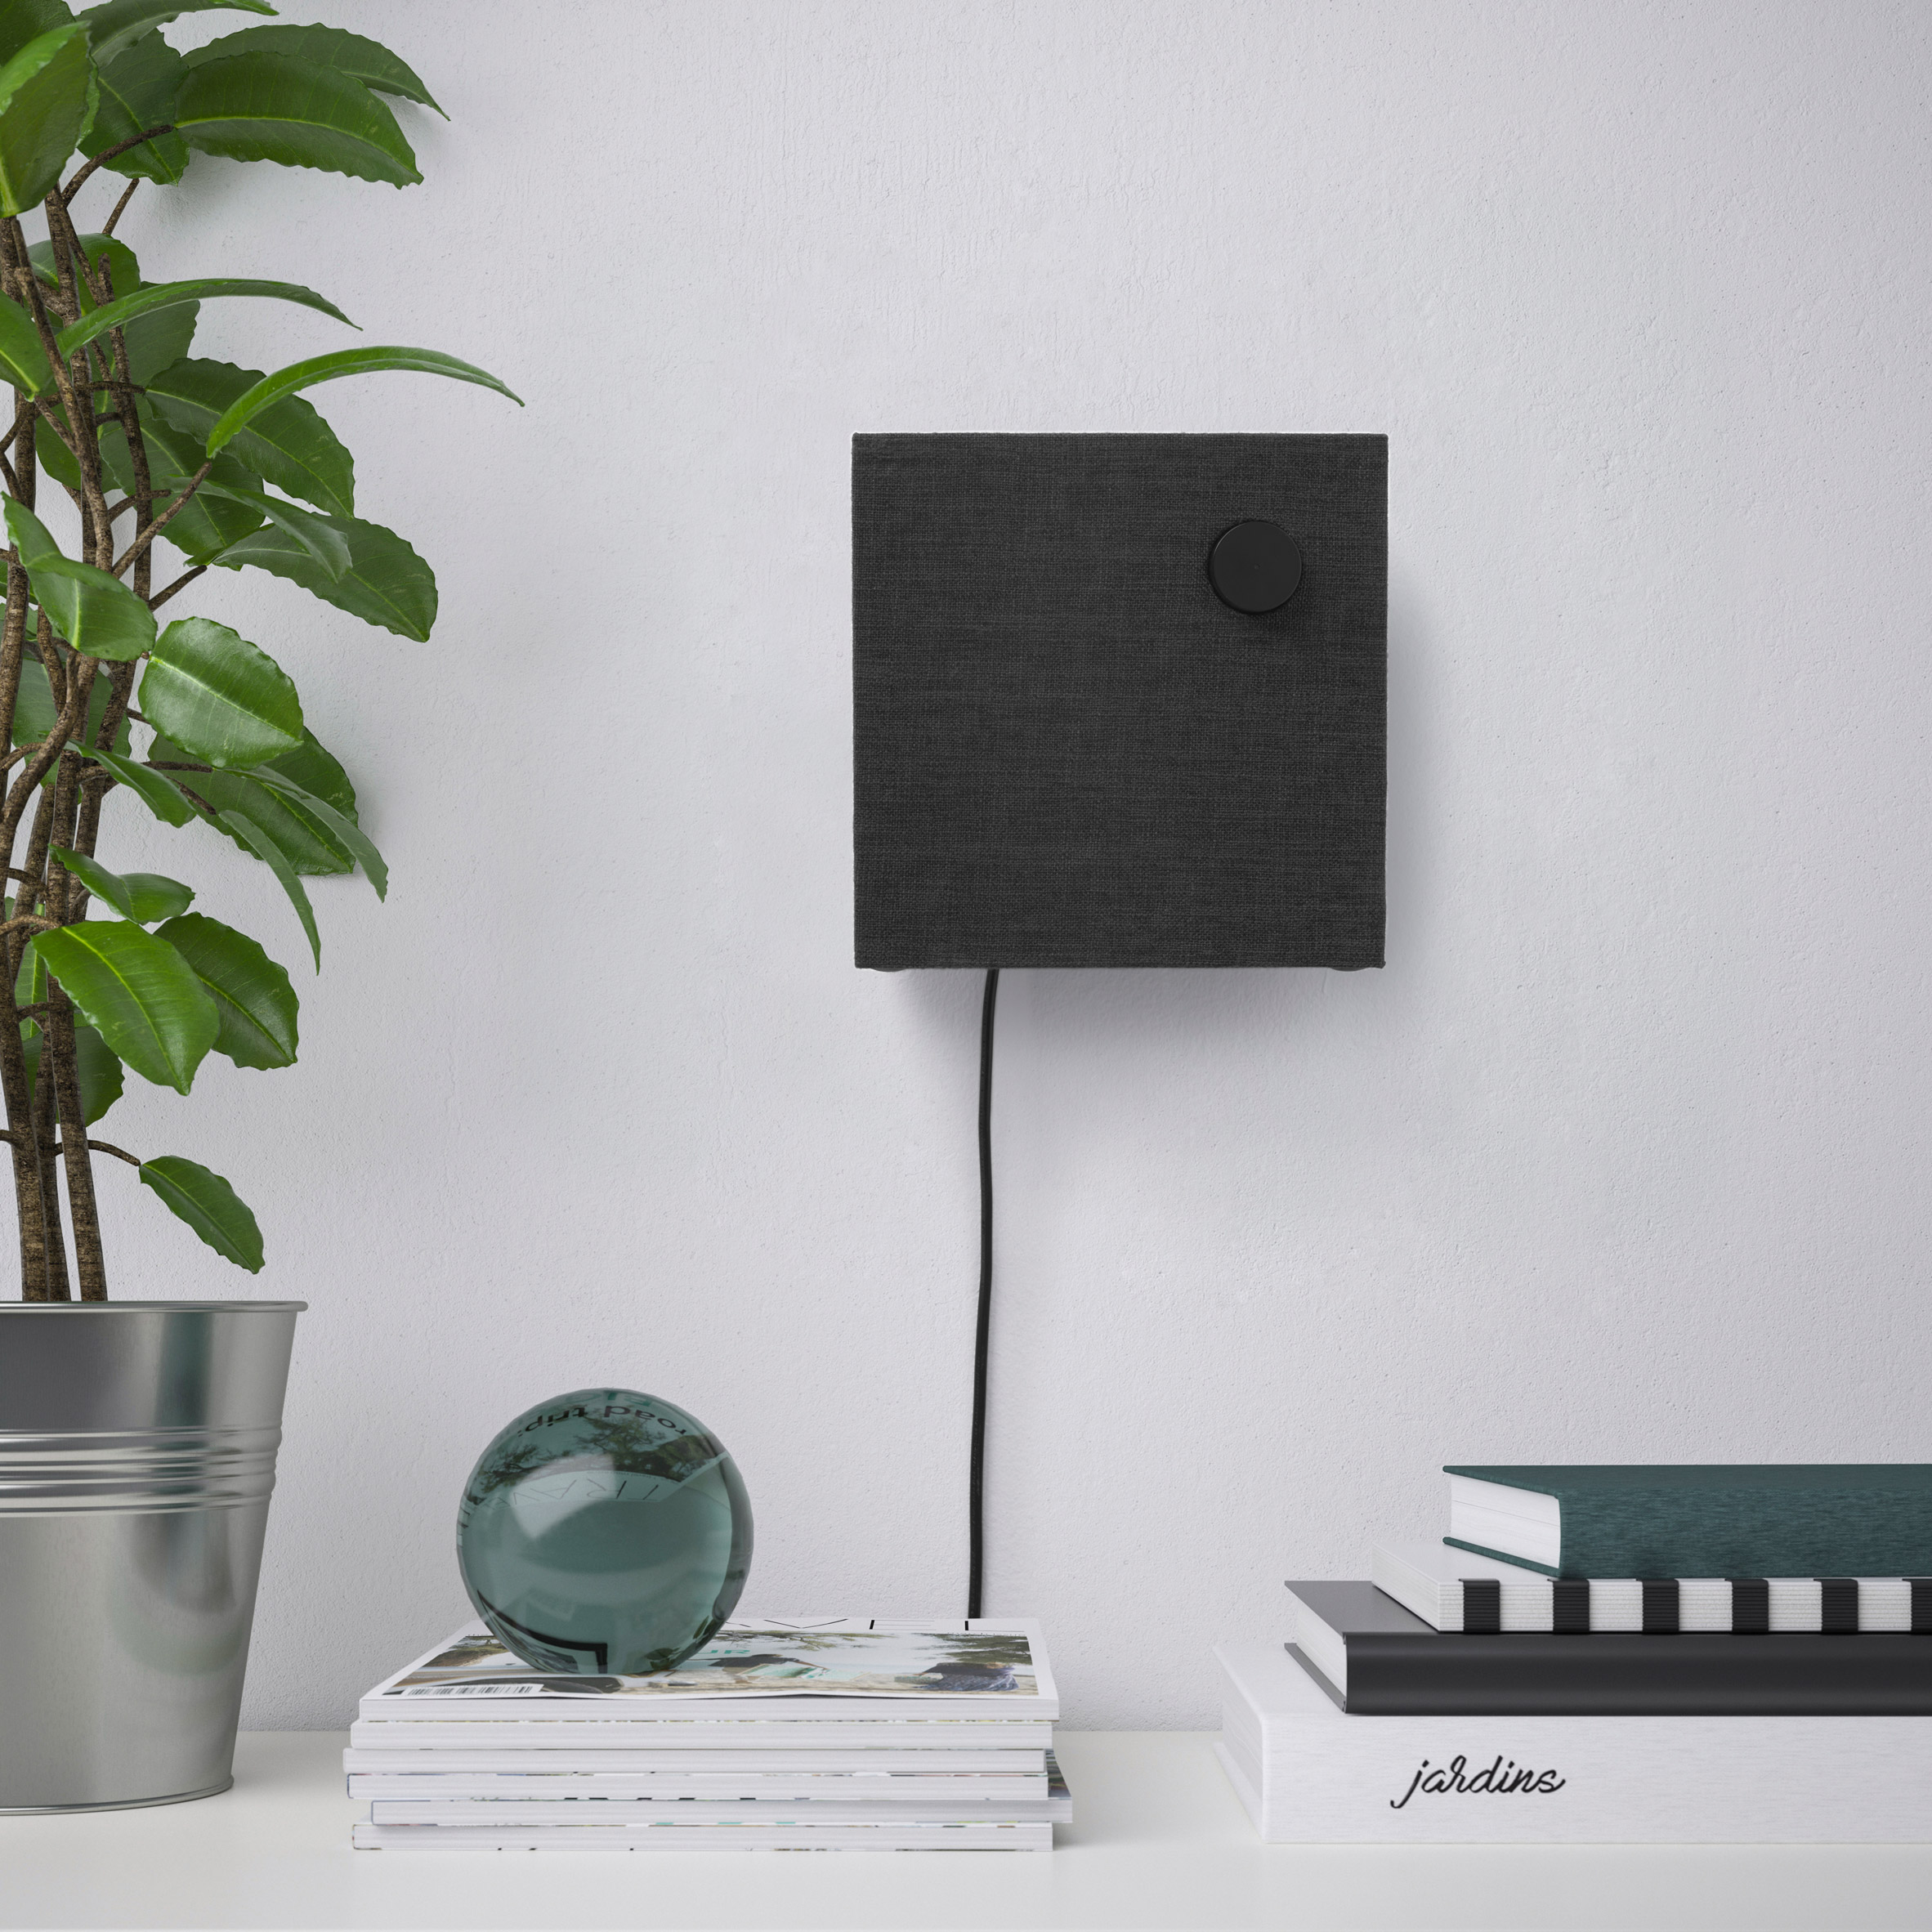 IKEA's Bluetooth speakers are its next foray into home gadgets